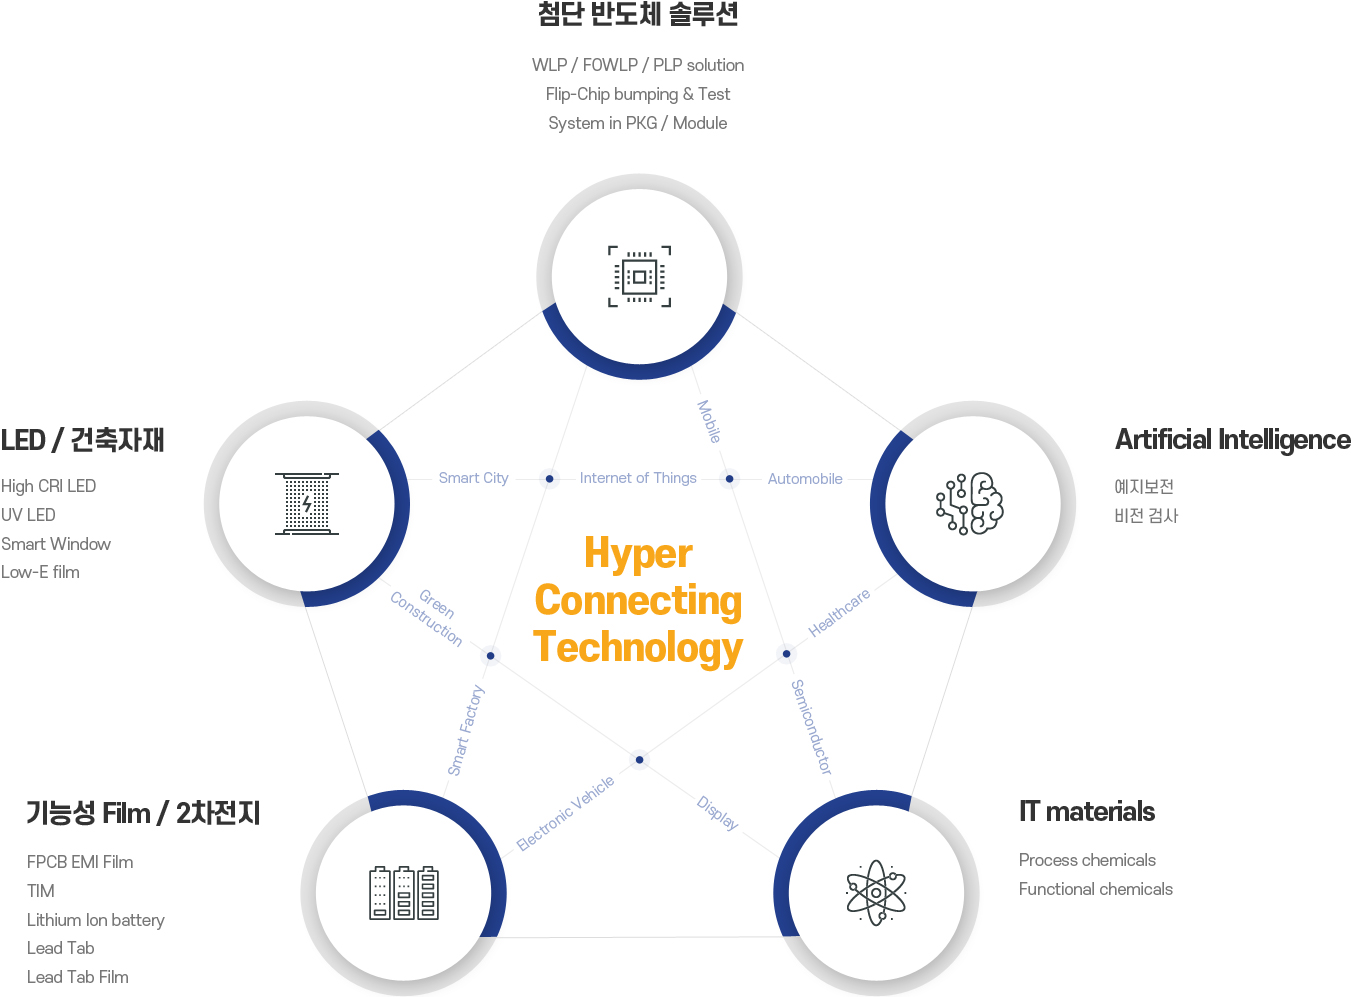 Hyper Connecting Technology image